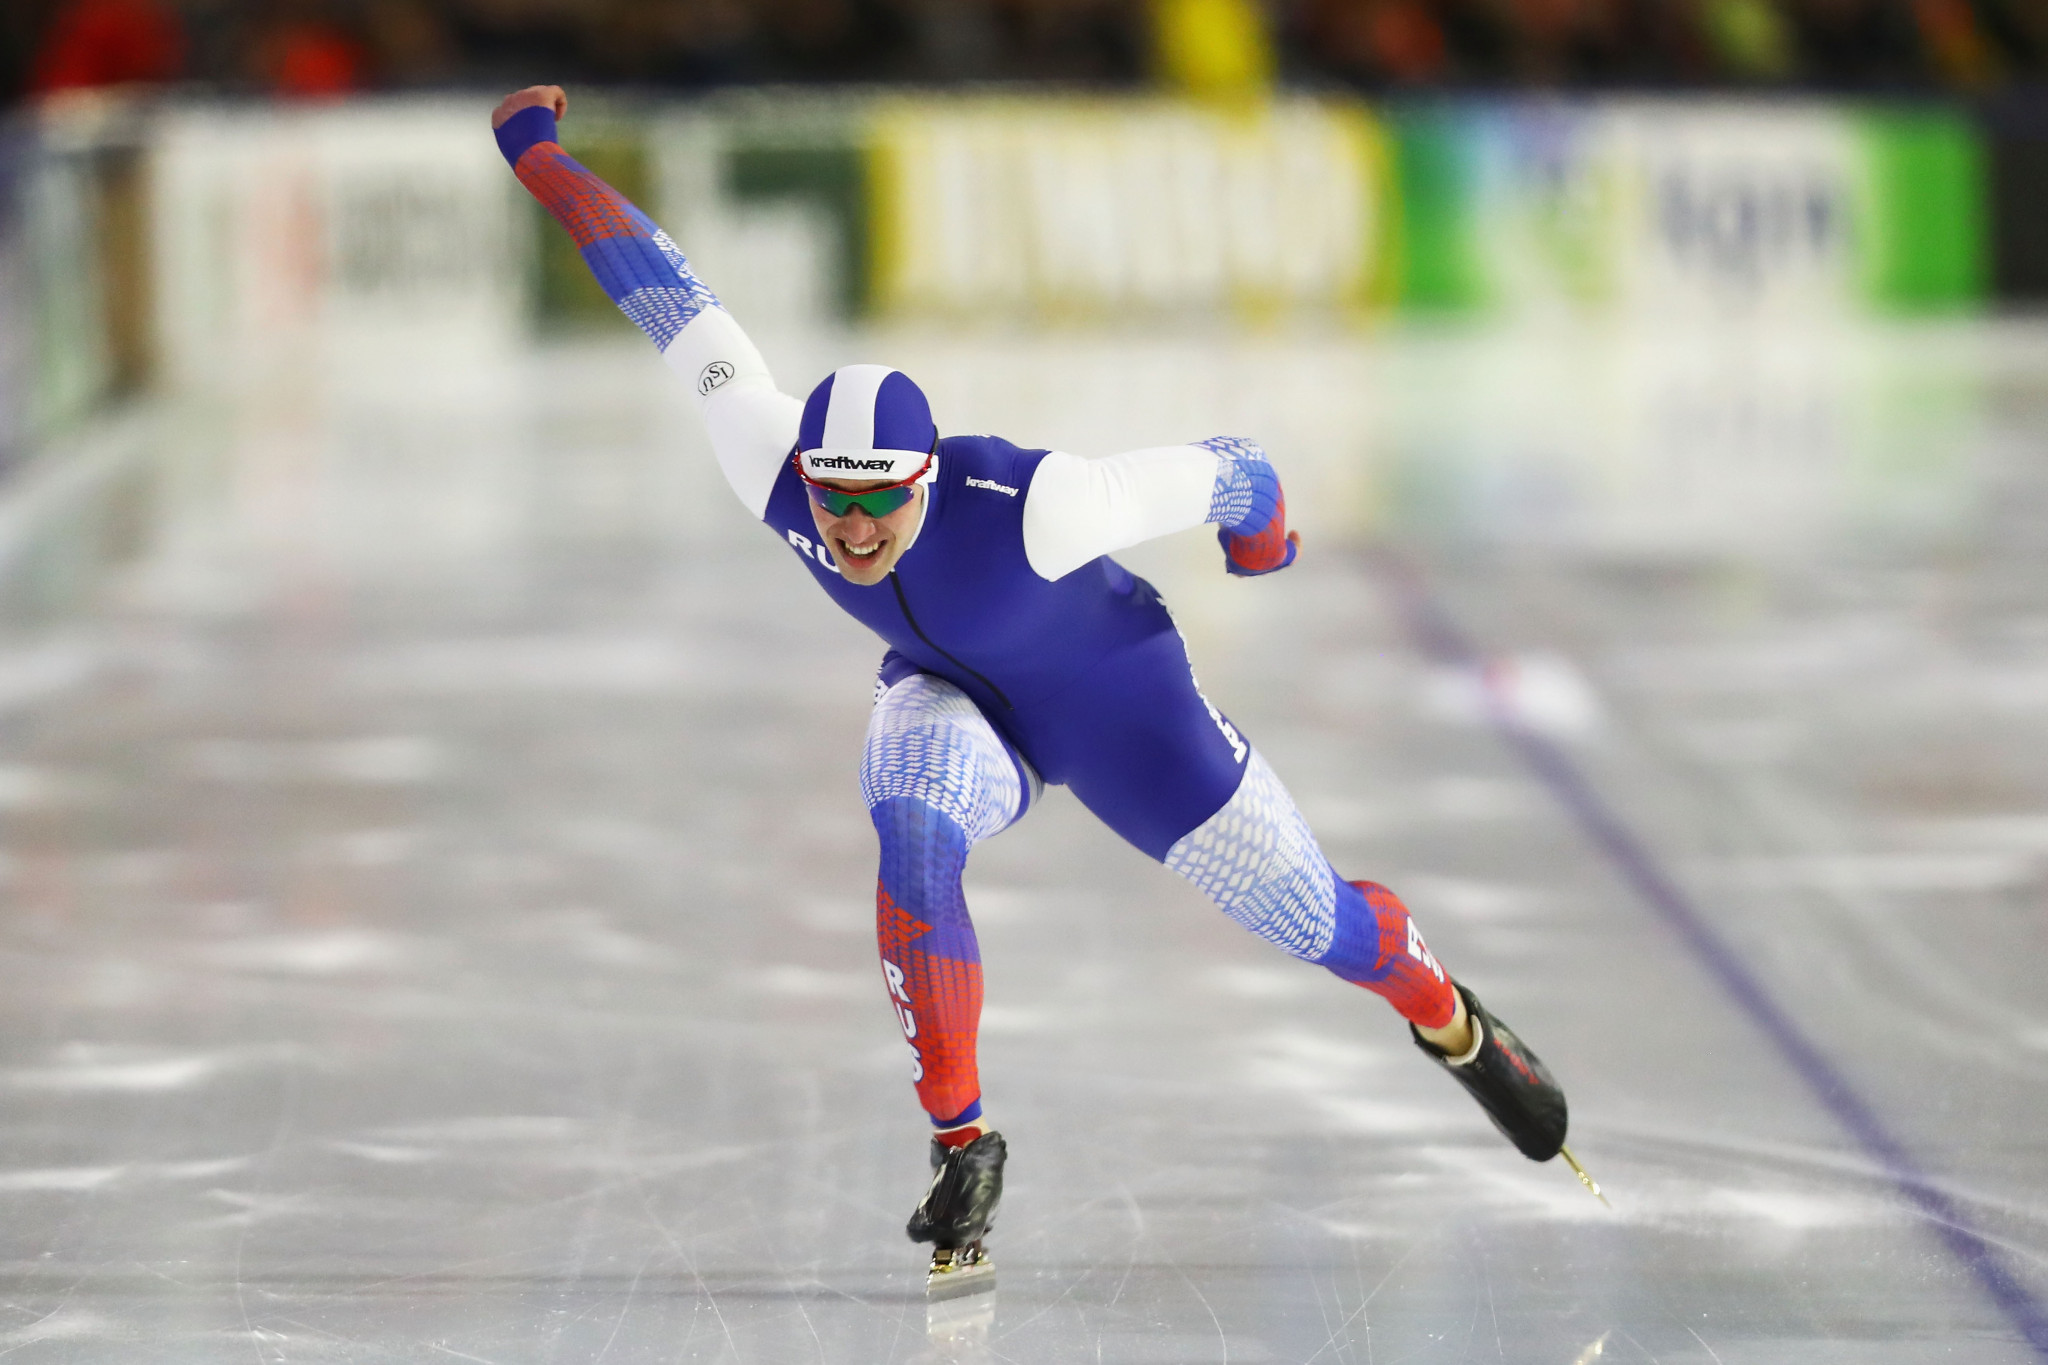 Russia's Viktor Mushtakov was among the winners on day one of the ISU Speed Skating World Cup in Nur-Sultan ©Getty Images